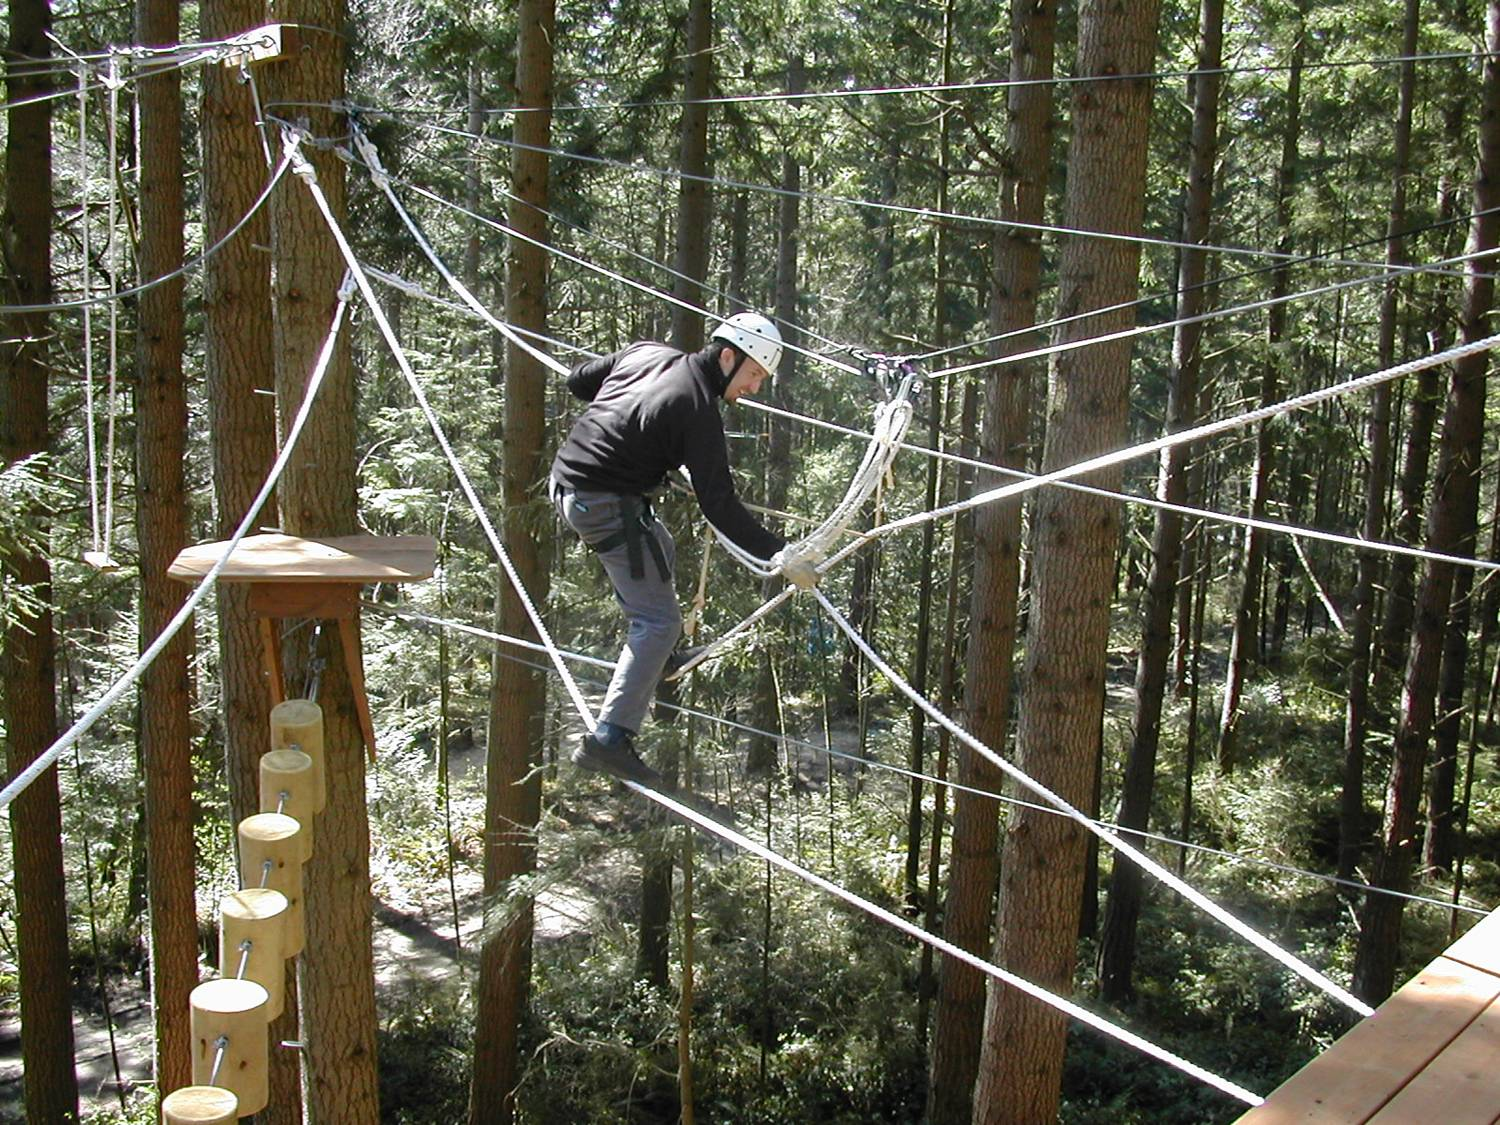 Eagle Rock Challenge Course